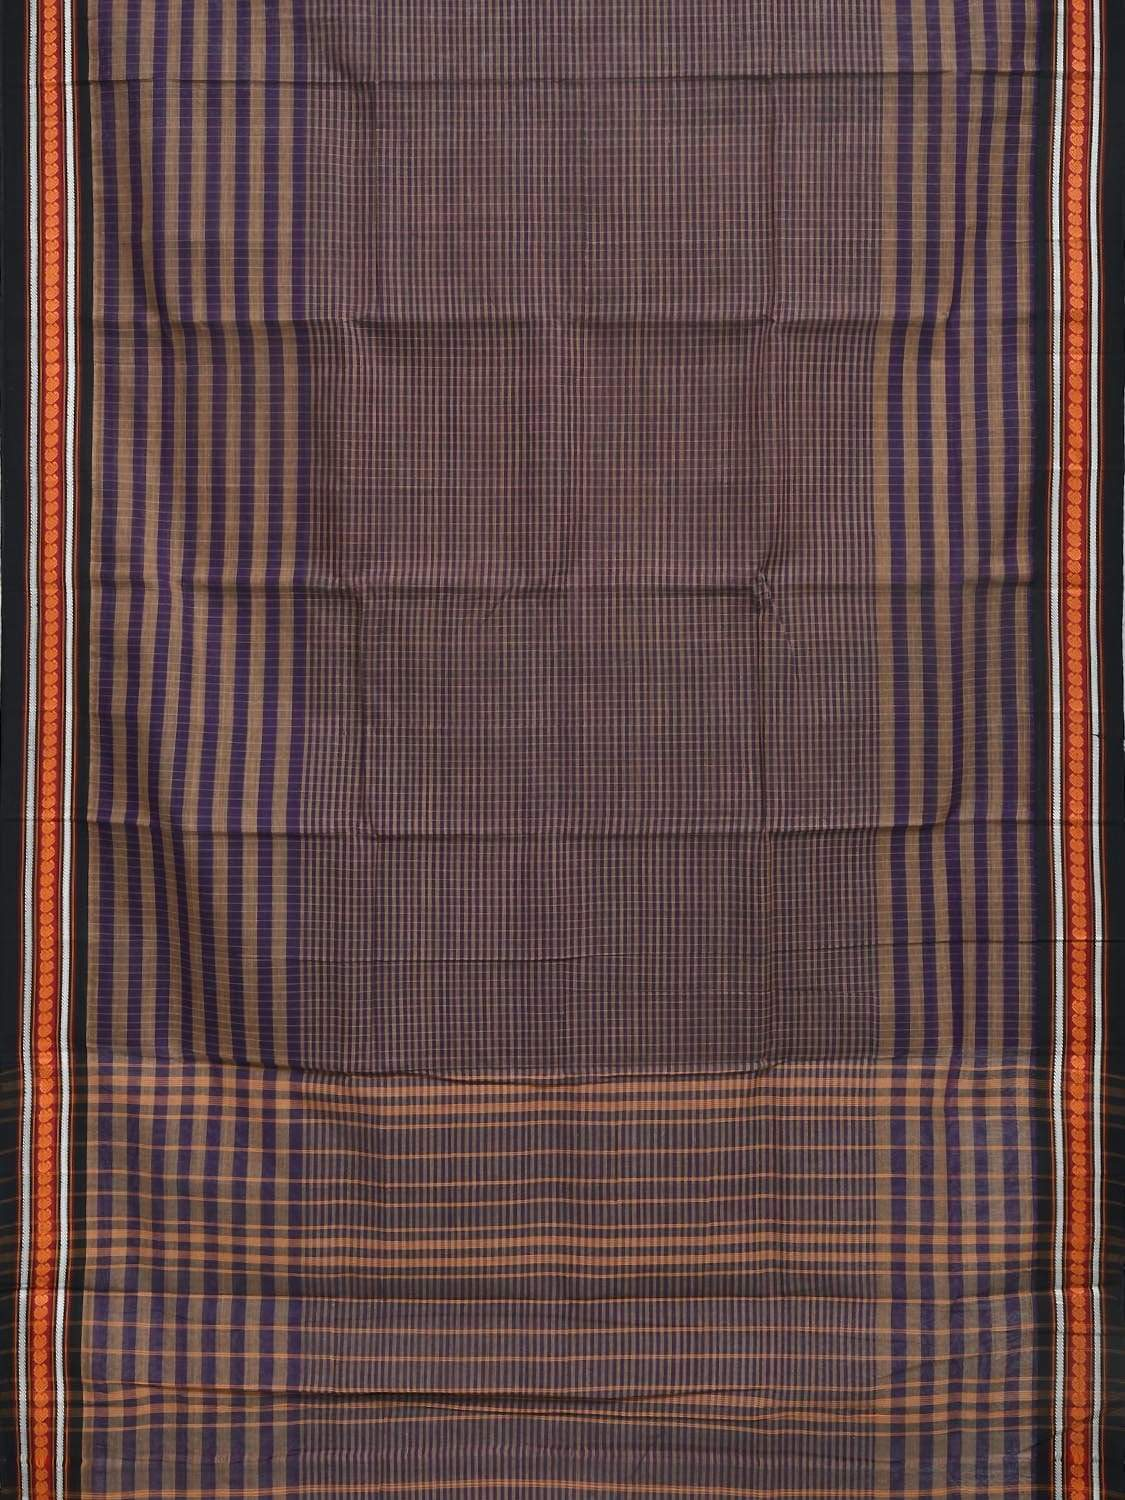 Purple Narayanpet Cotton Handloom Saree with Checks and Strips Design No Blouse np0251